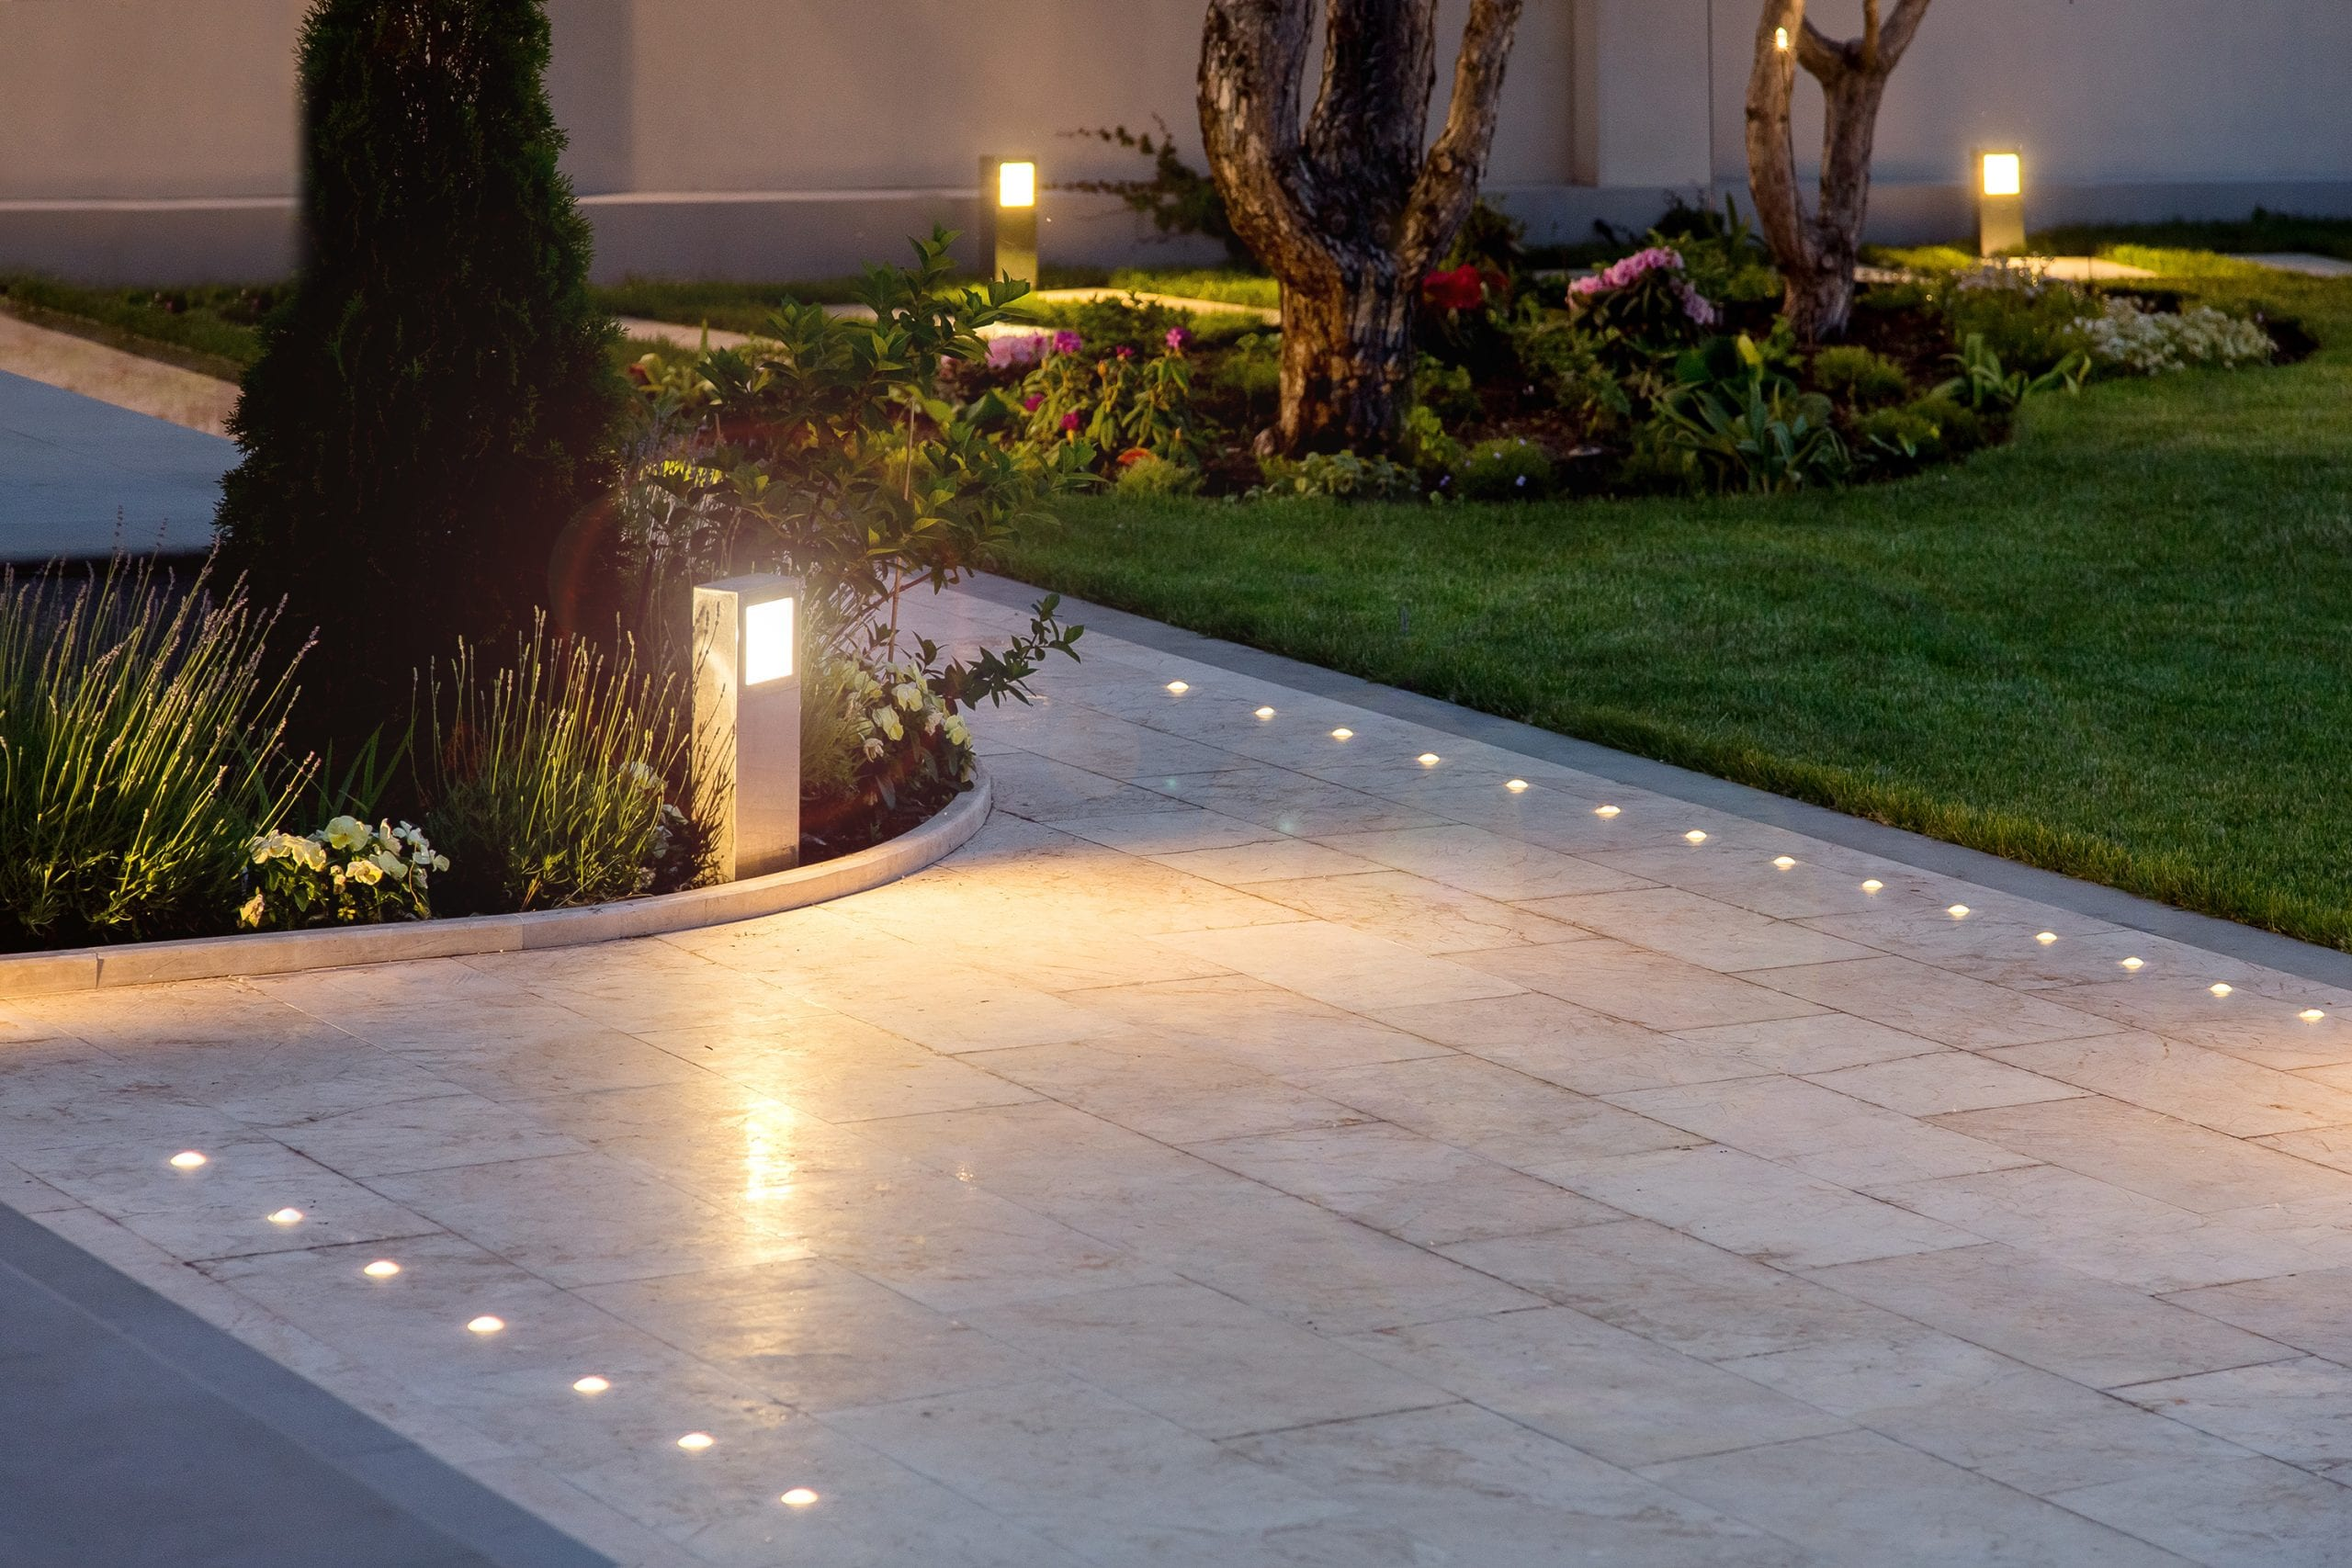 Outdoor Tile areas